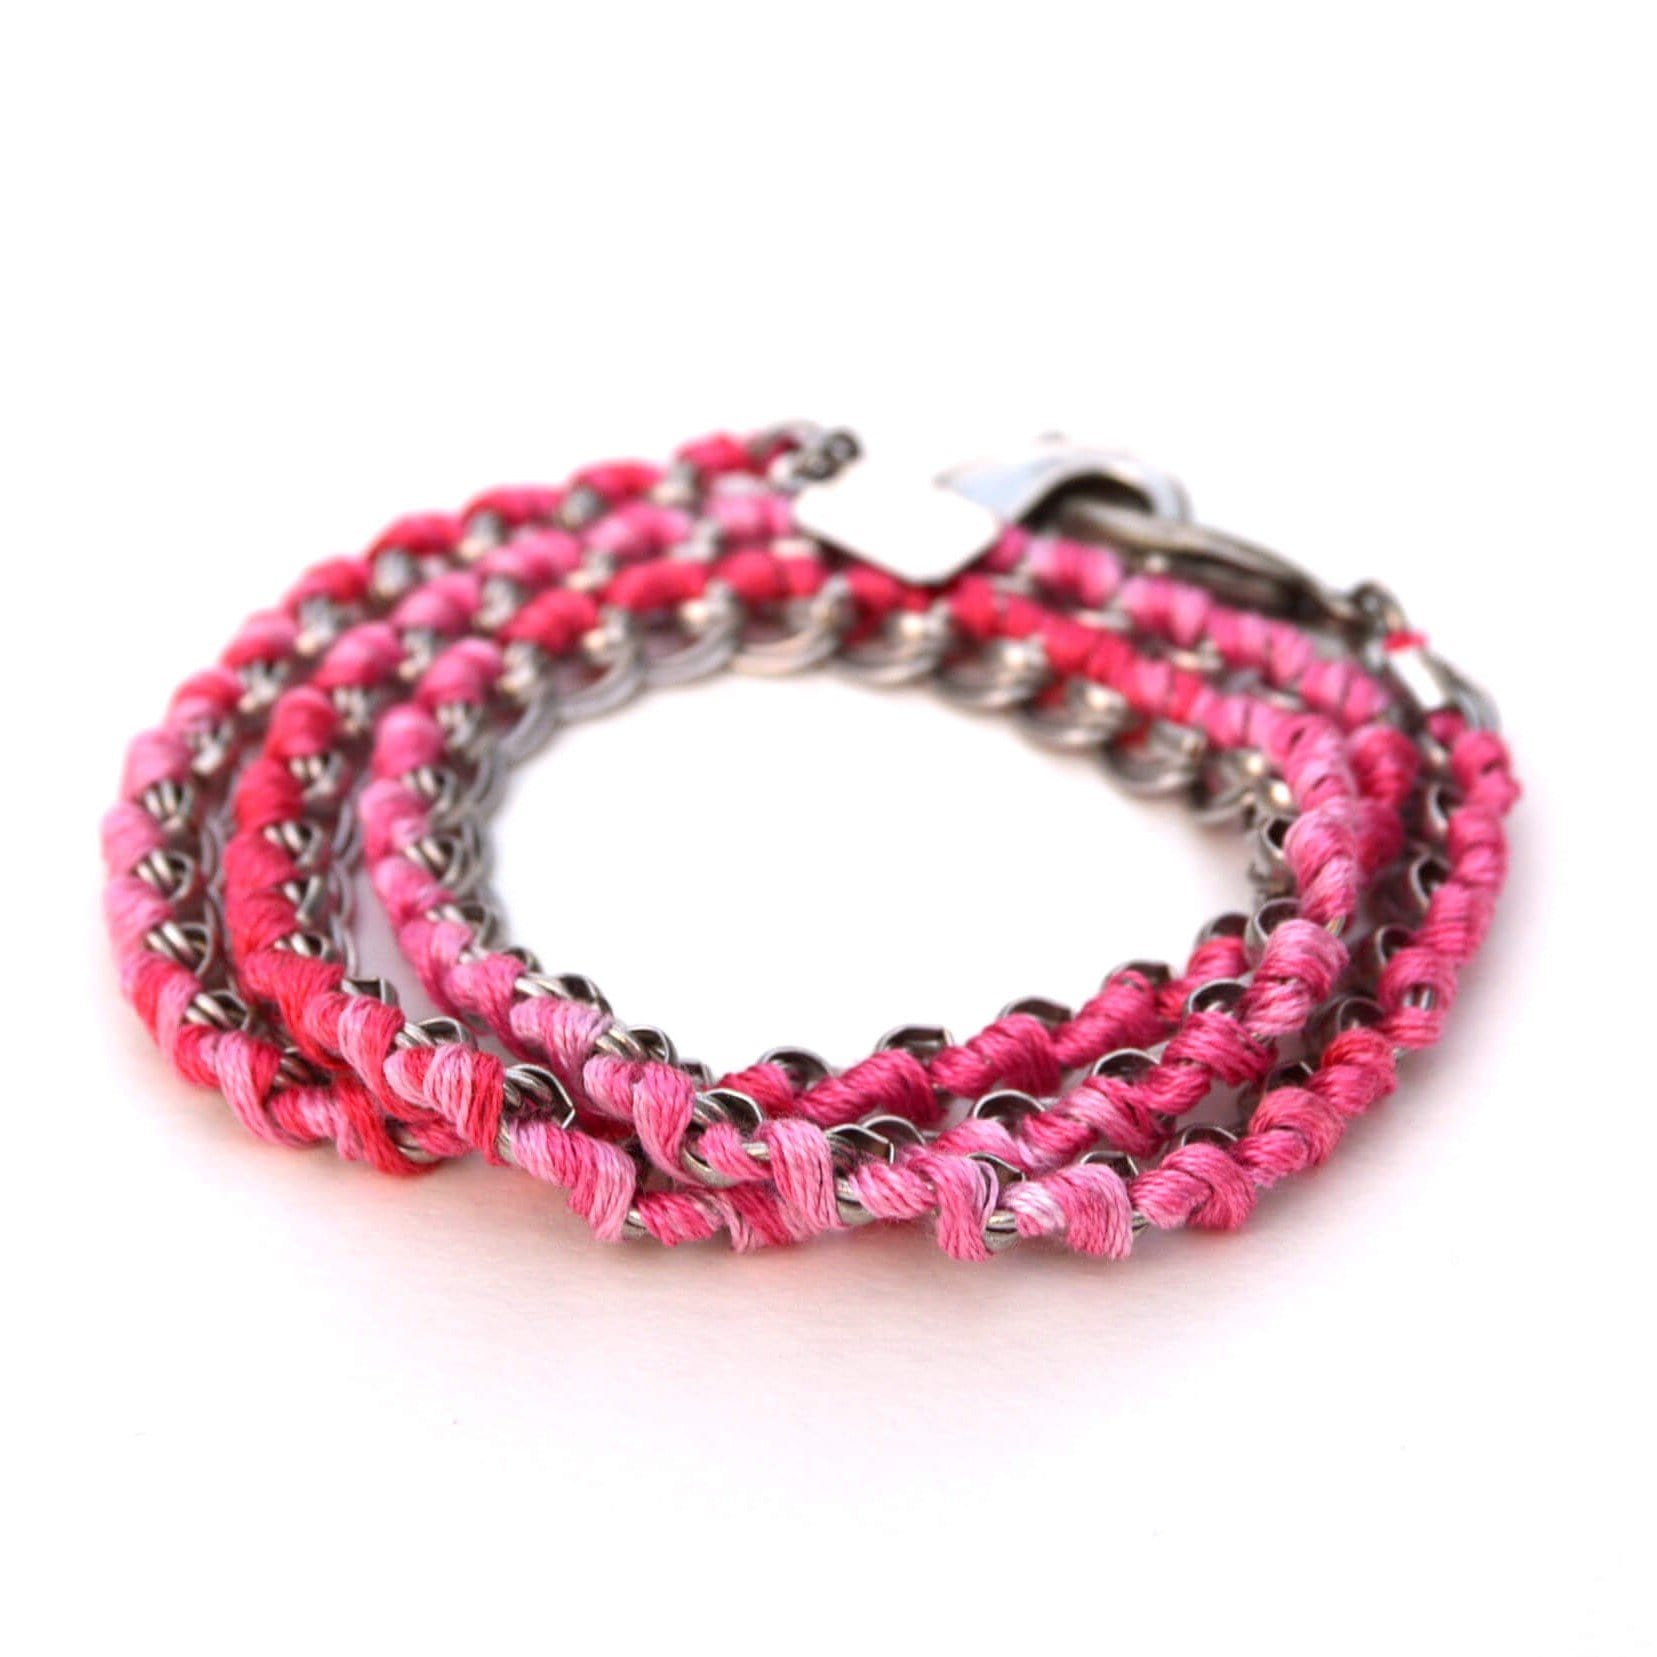 LOVE Links 3-in-1 Necklace + Bracelet + Mask Holder - Antique Silver Pink Ombré